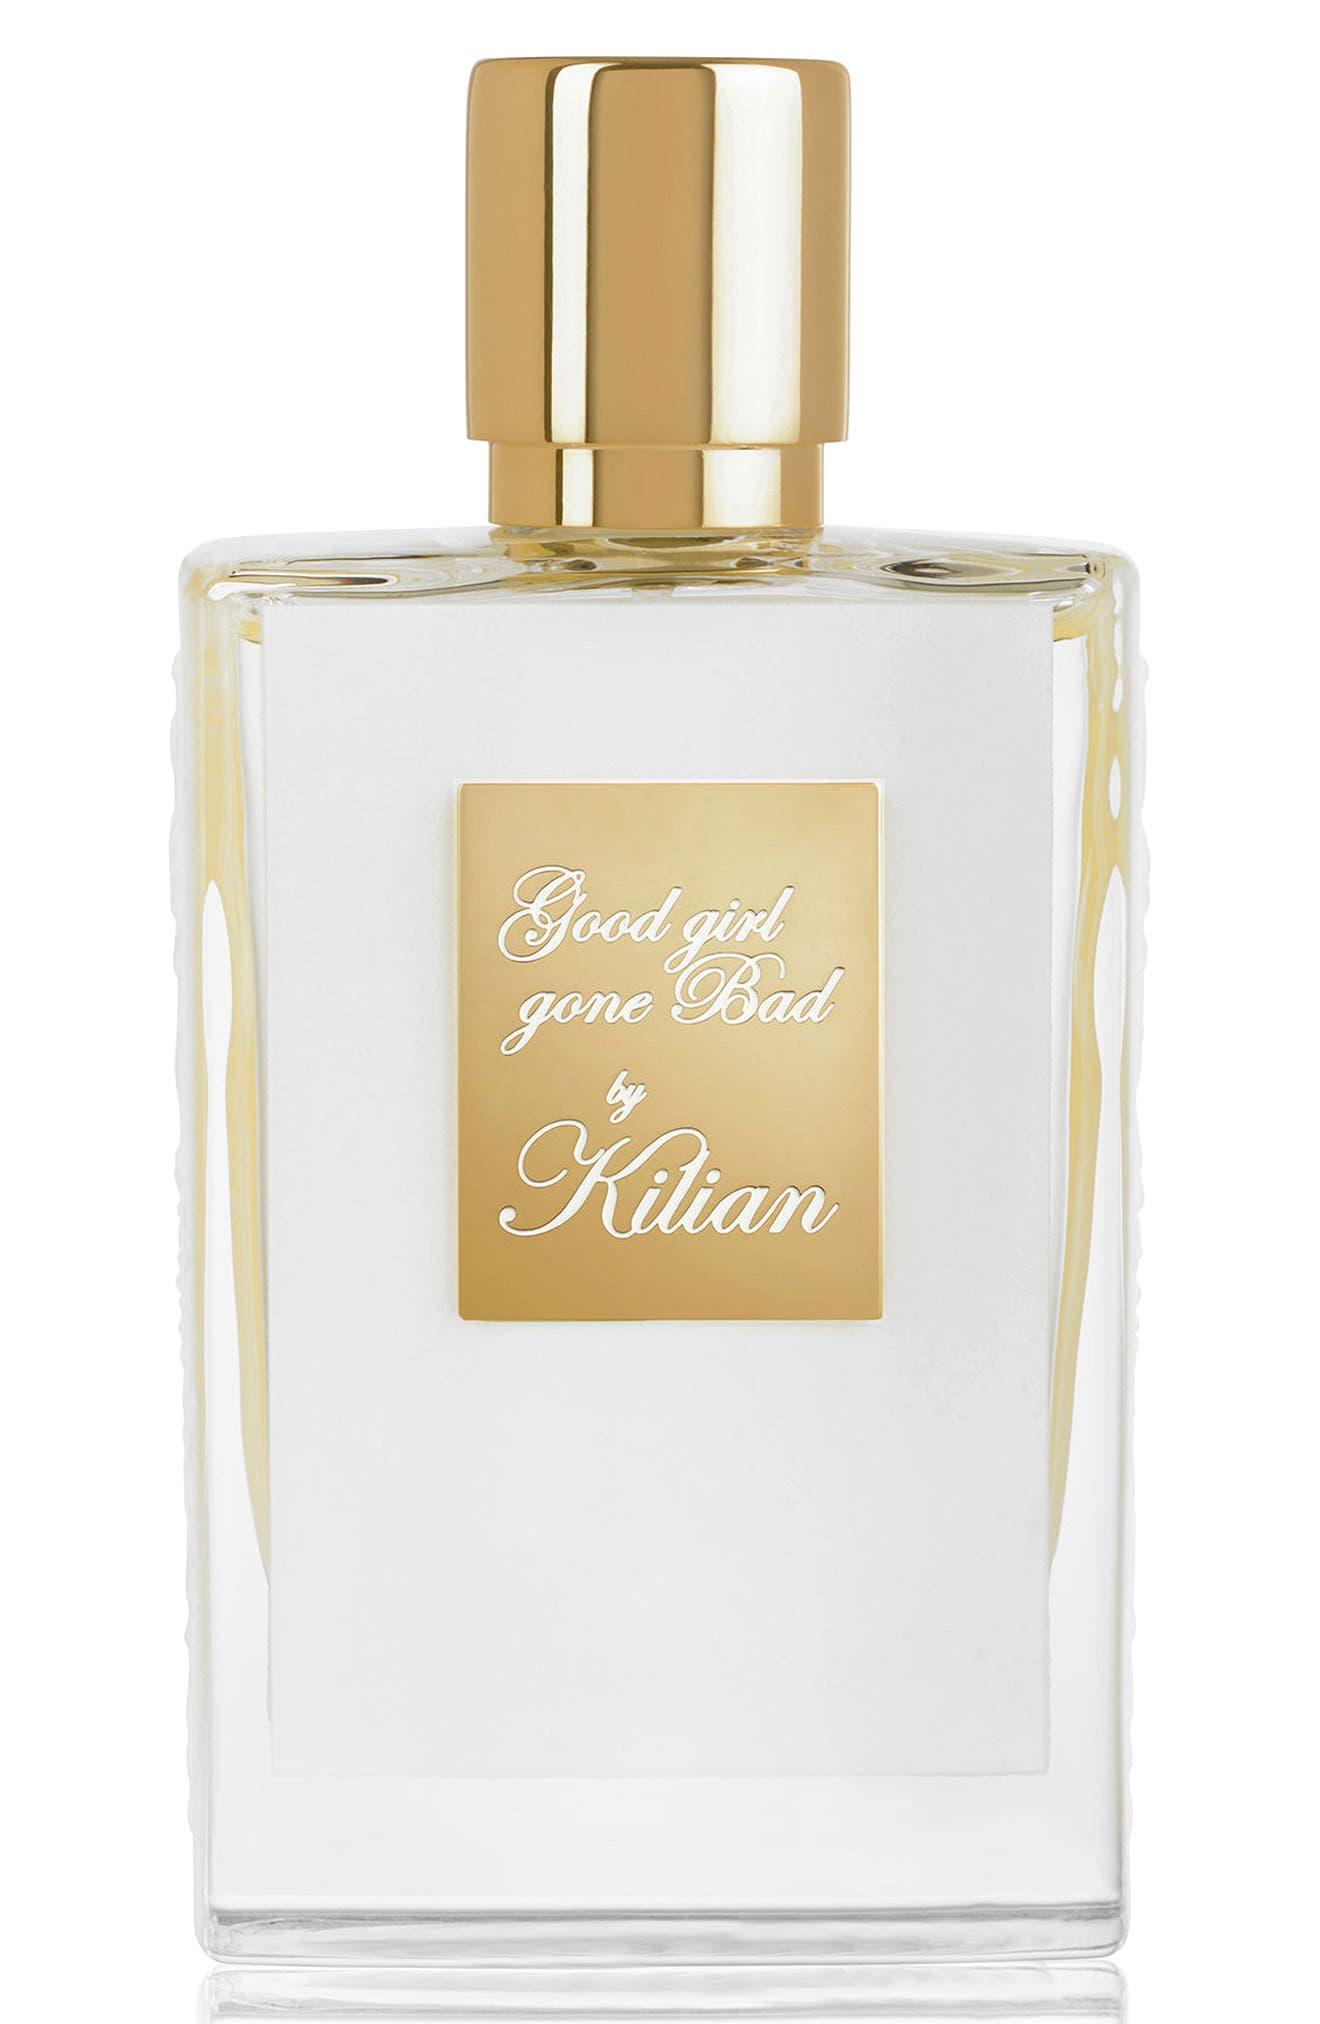 KILIAN, In the Garden of Good and Evil Good girl gone Bad Refillable Fragrance Spray, Main thumbnail 1, color, NO COLOR